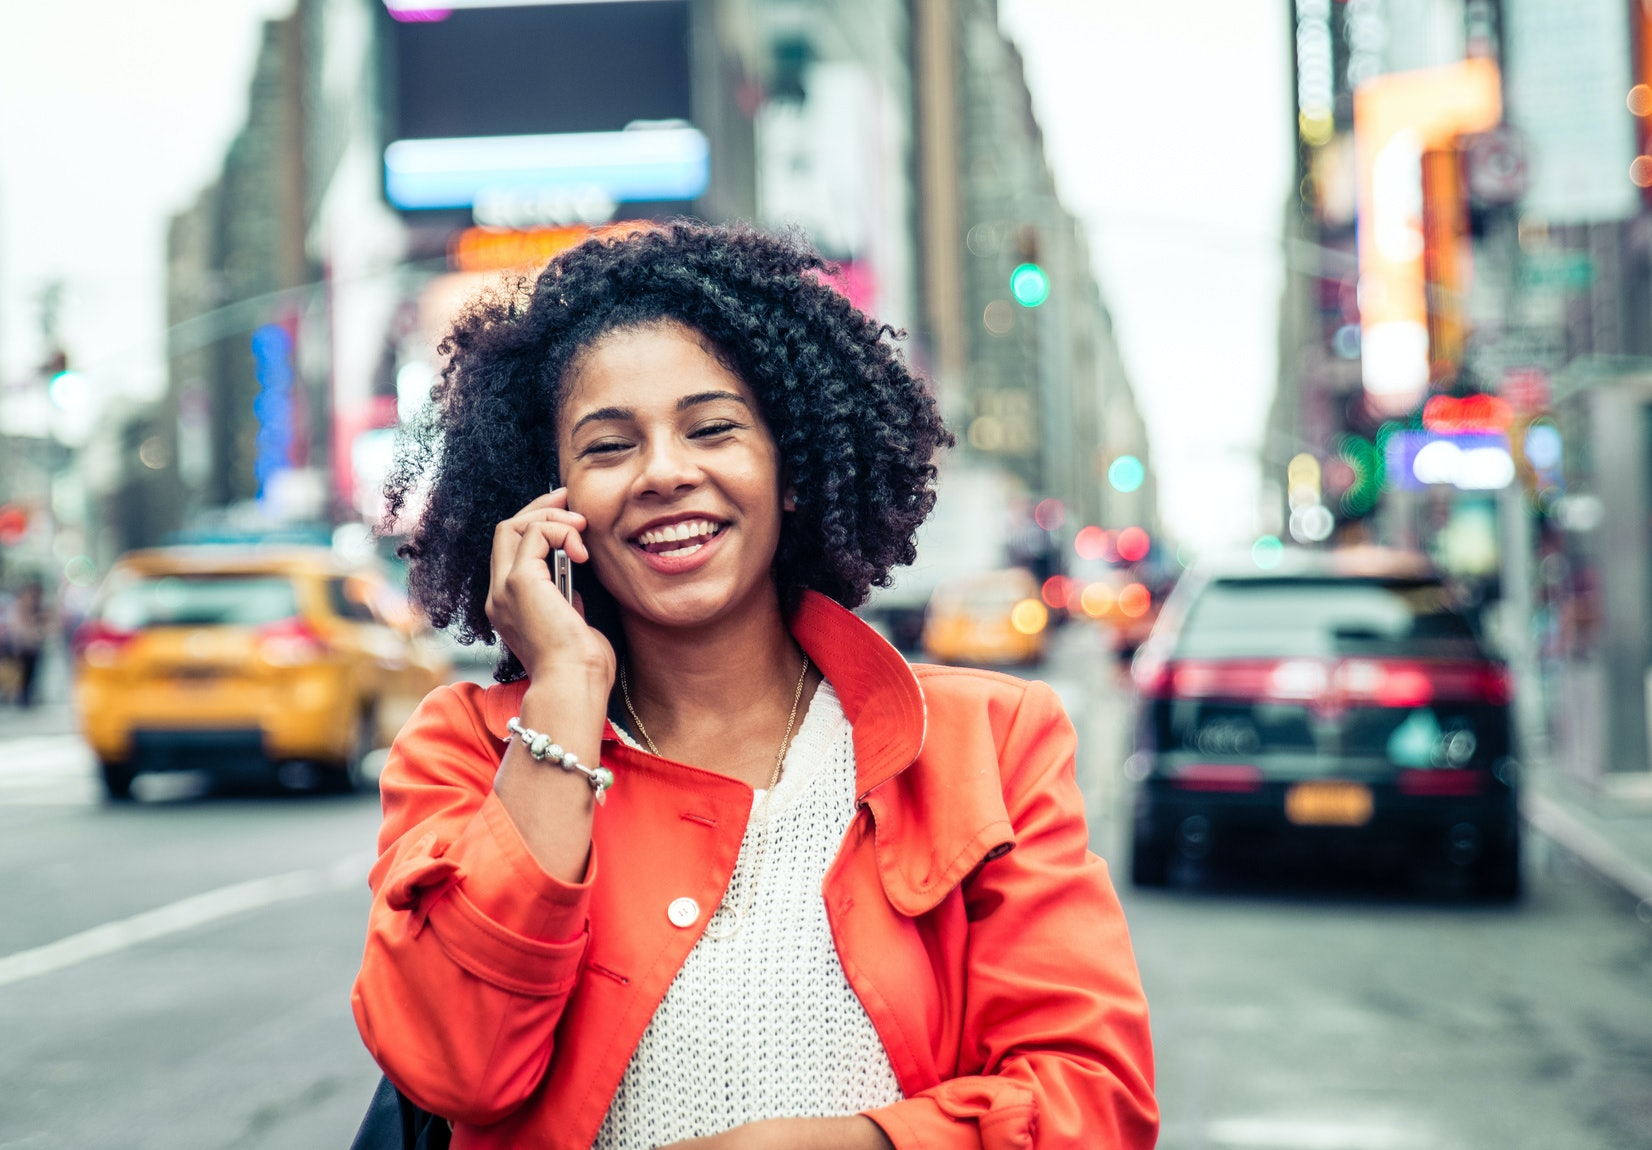 Long phone calls dating services